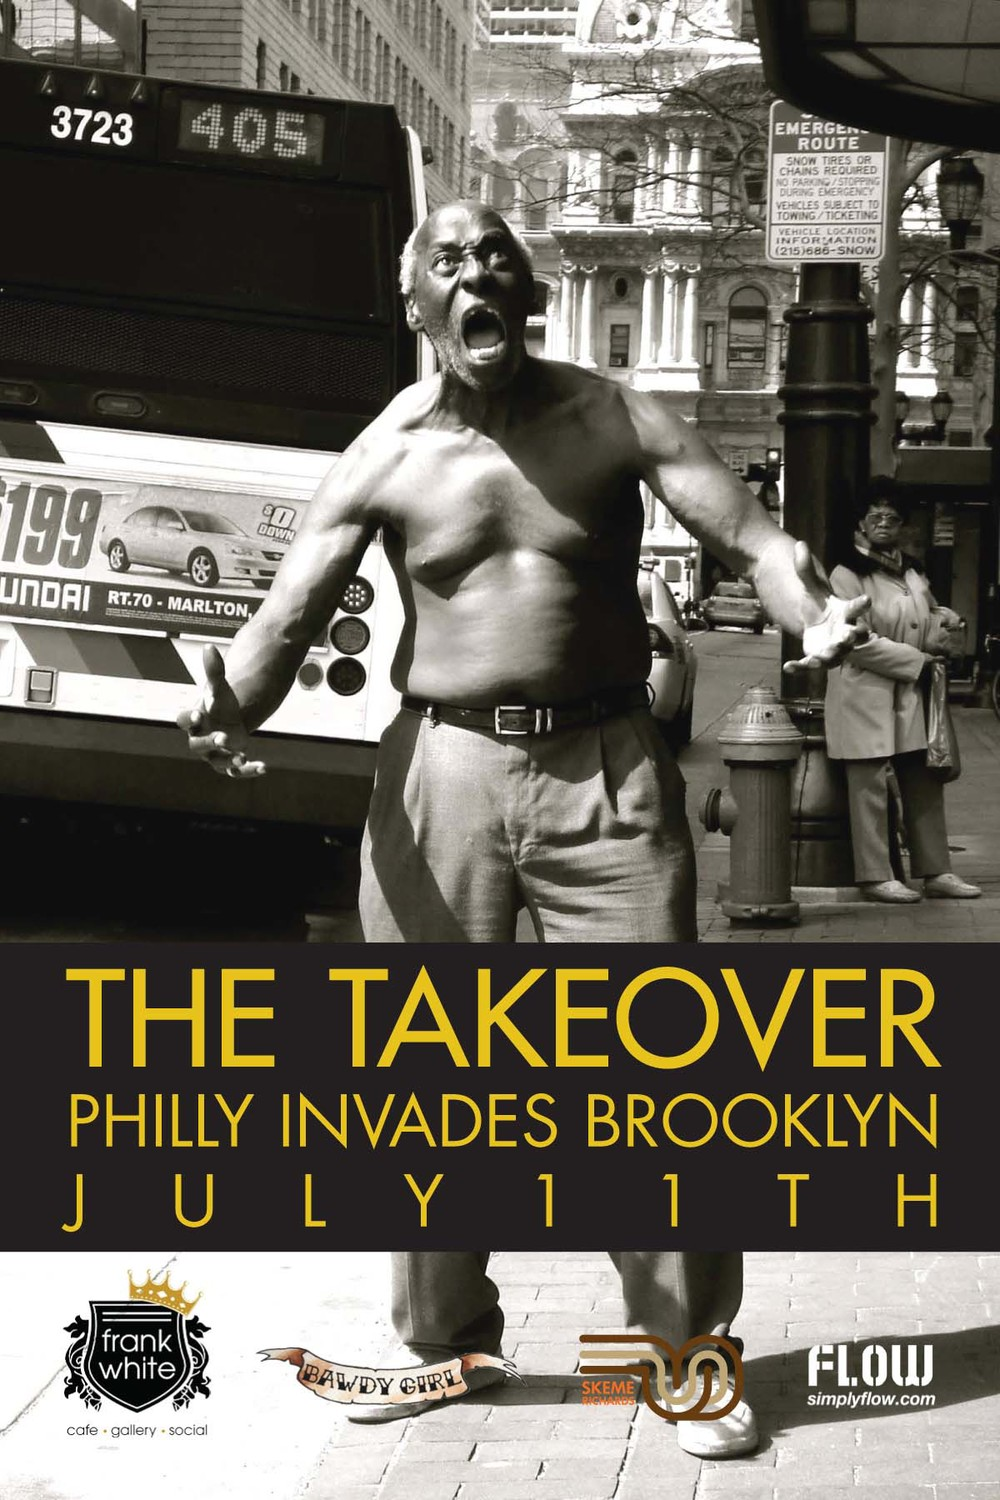 Frank White :: Philly invades Brooklyn